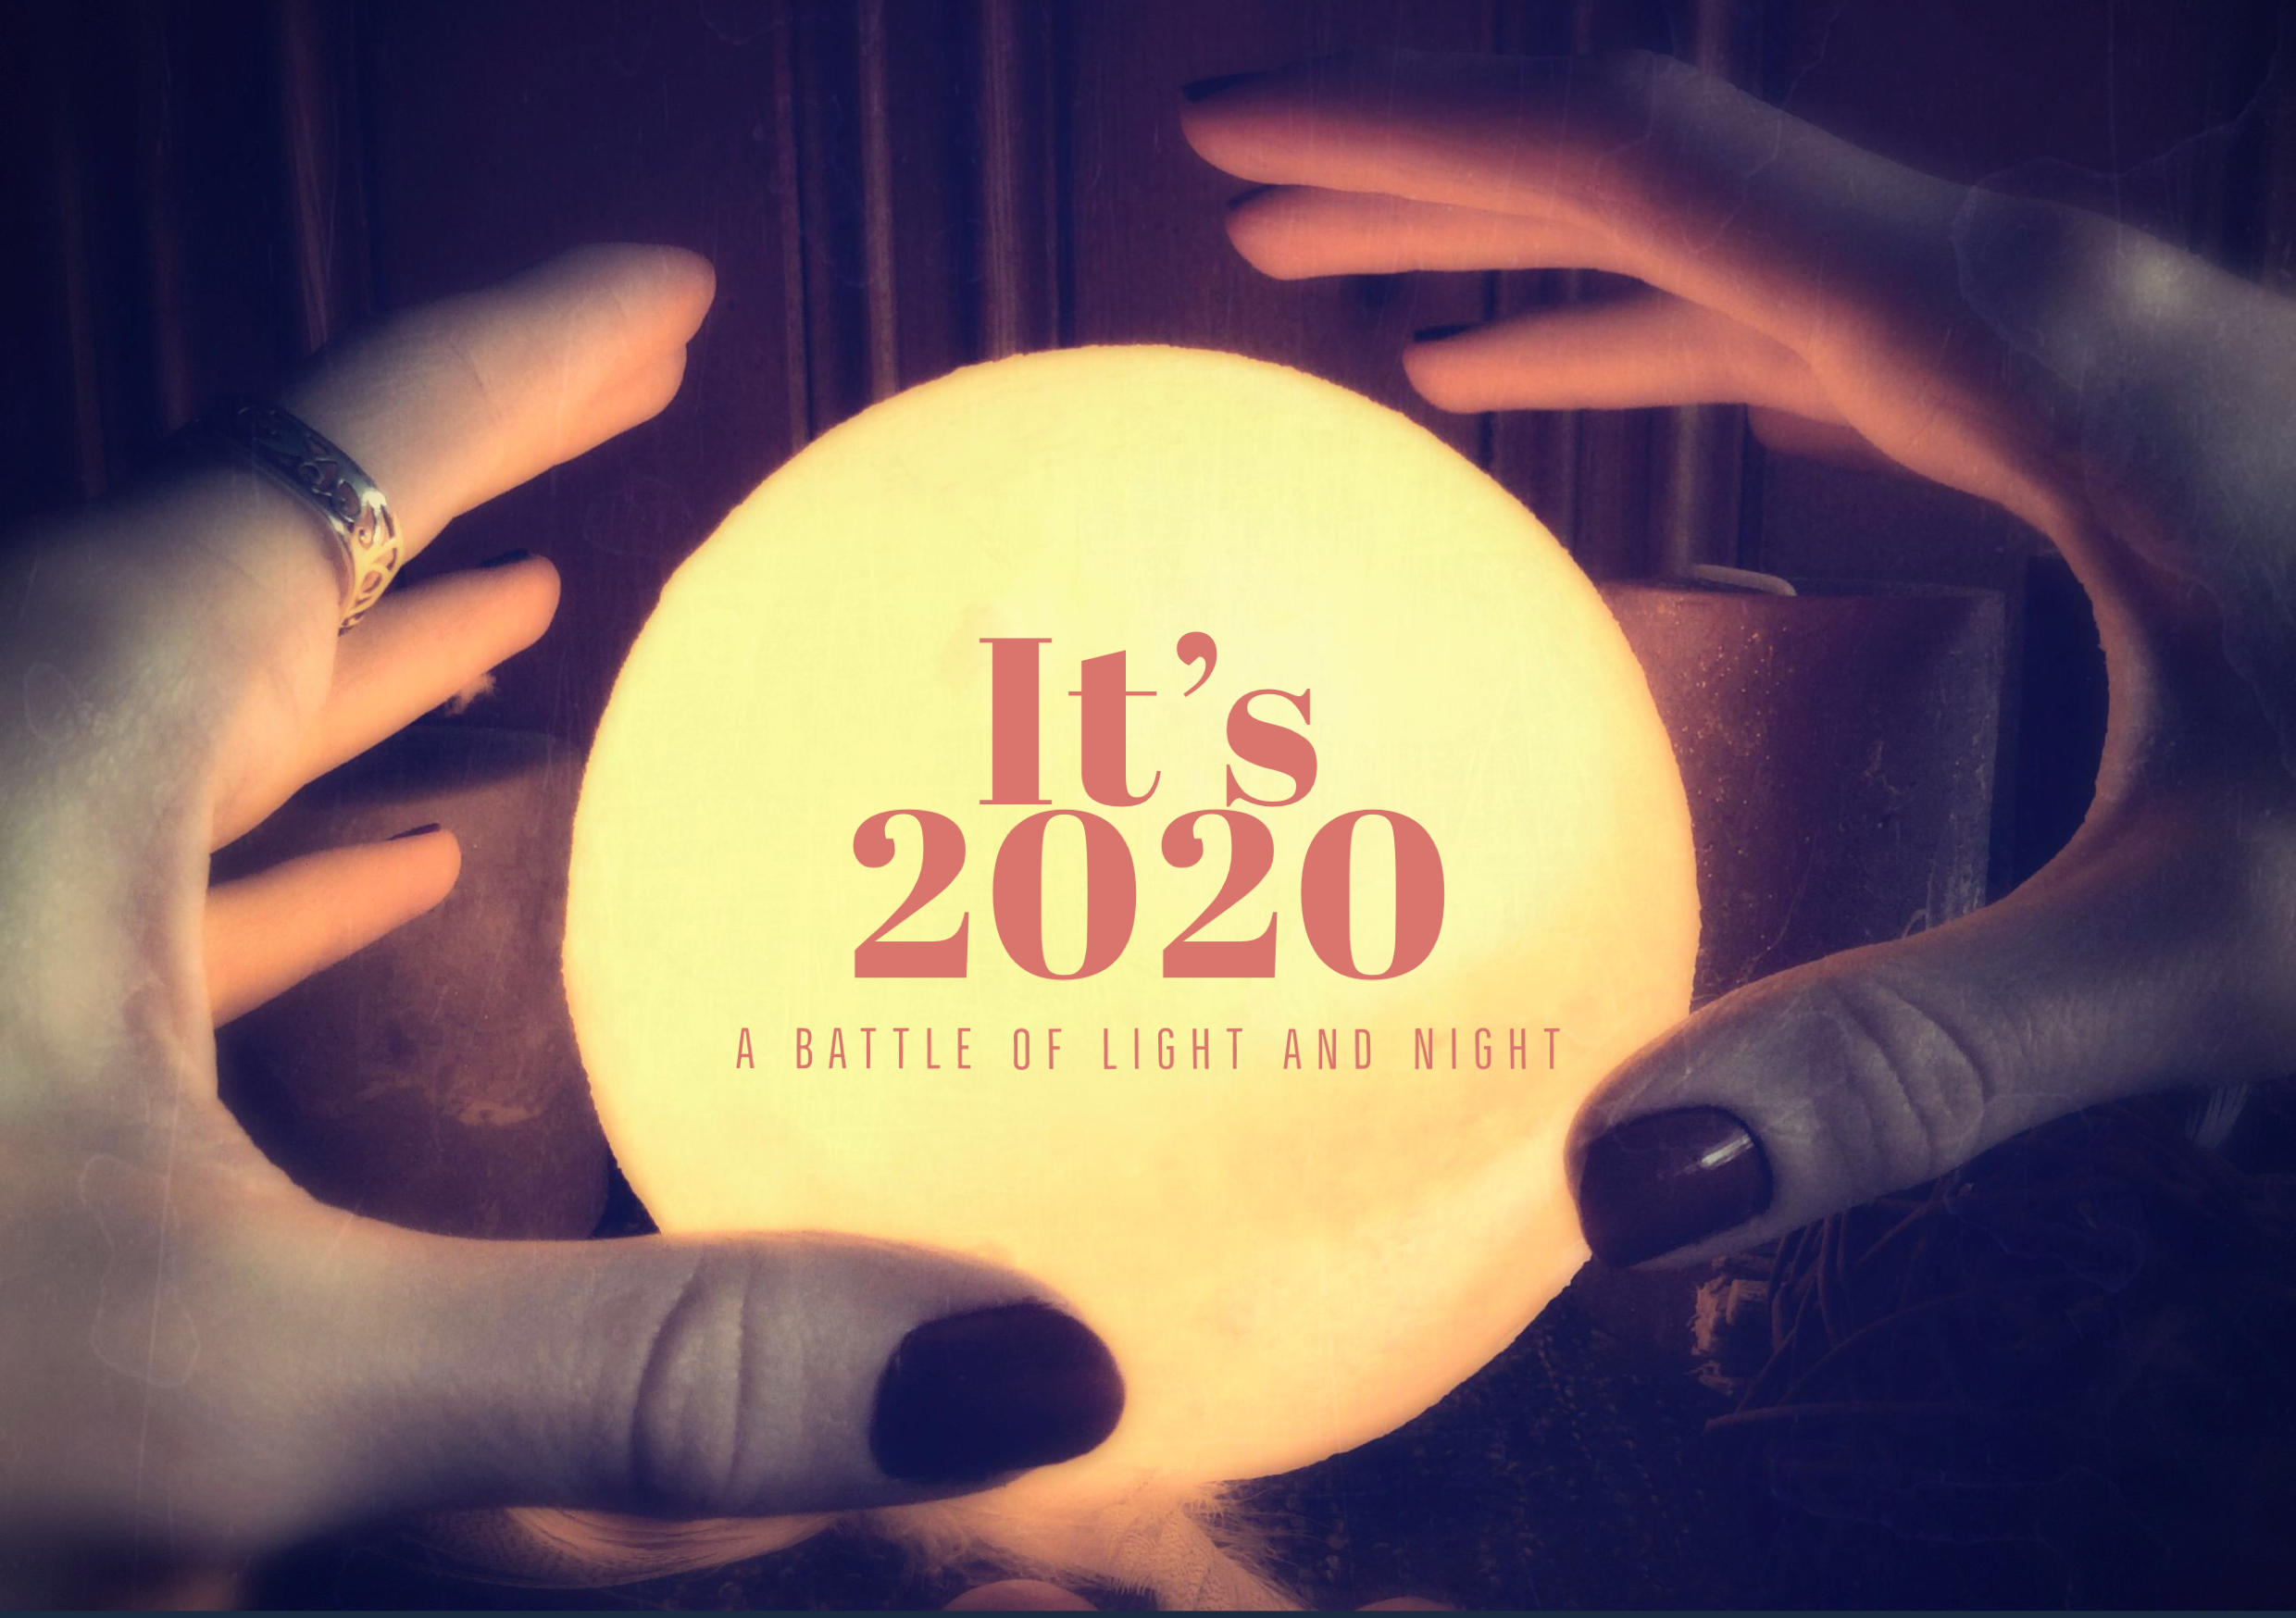 It's 2020: A battle of Light and Night